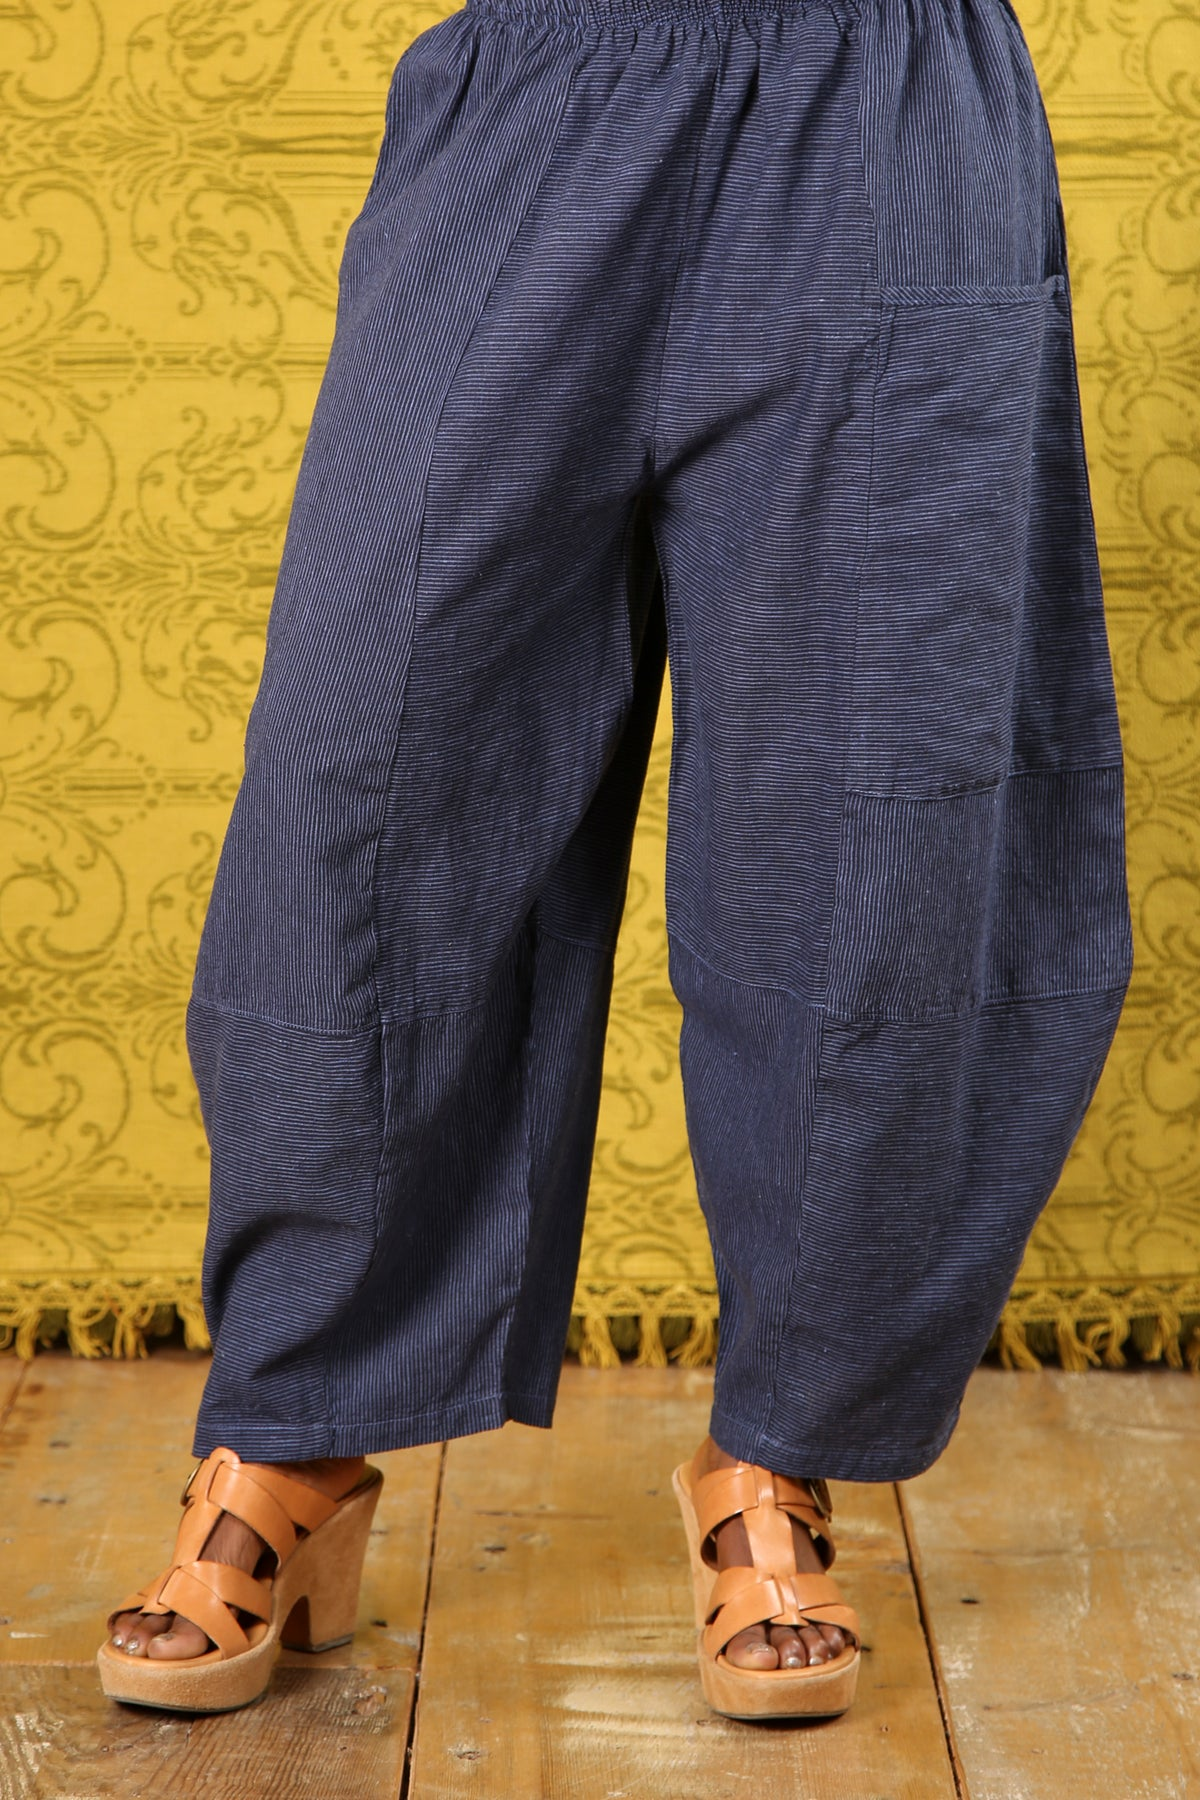 3289 Striped Four Square Pant Elemental Blue/Indigo Stripe - Unprinted